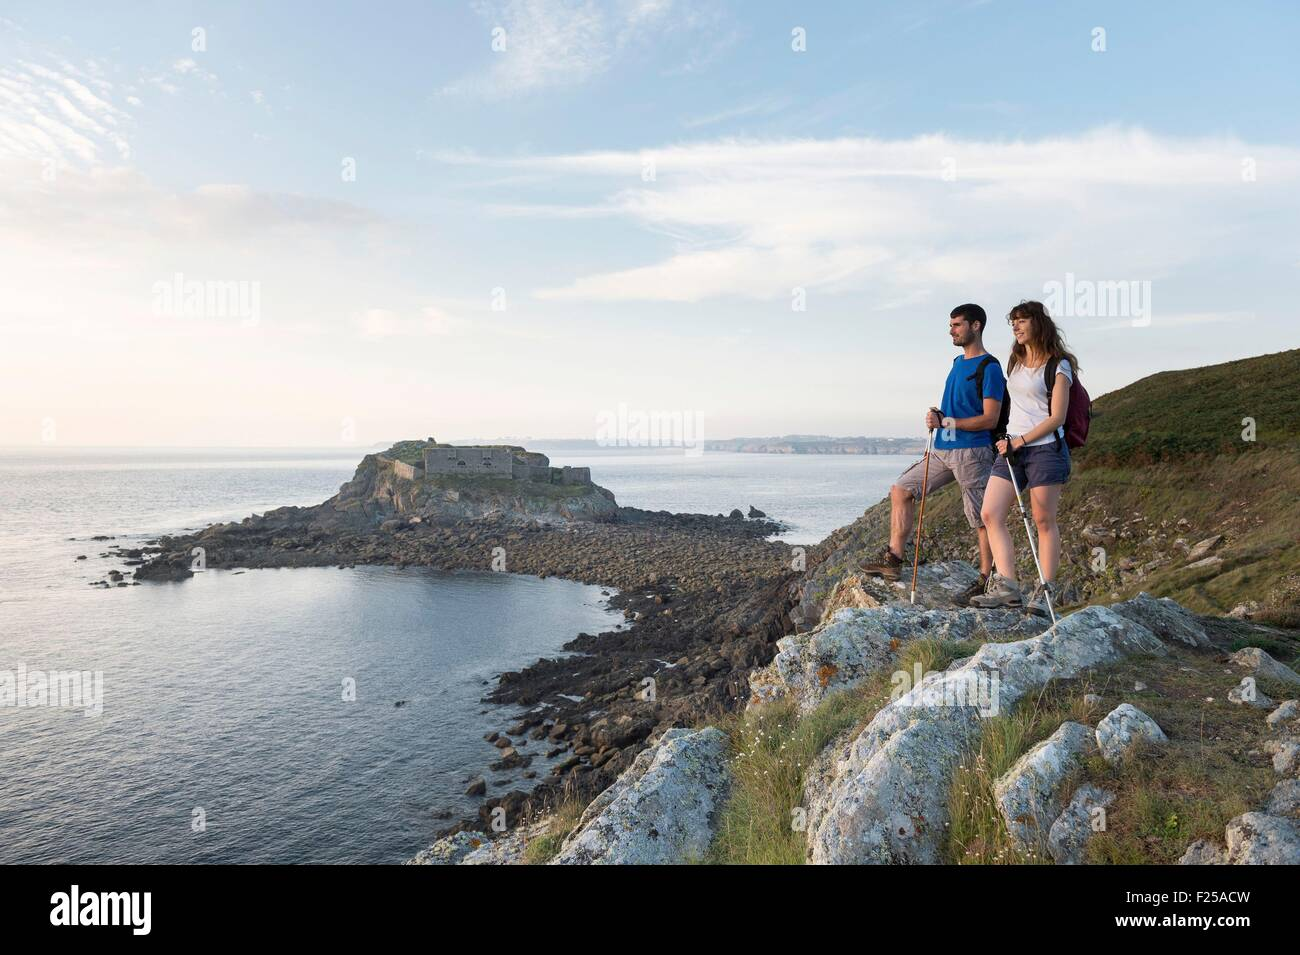 France, Finistere, Le Conquet, walk on peninsula of Kermorvan with cove Porz Pabu and the old fort in the background Stock Photo